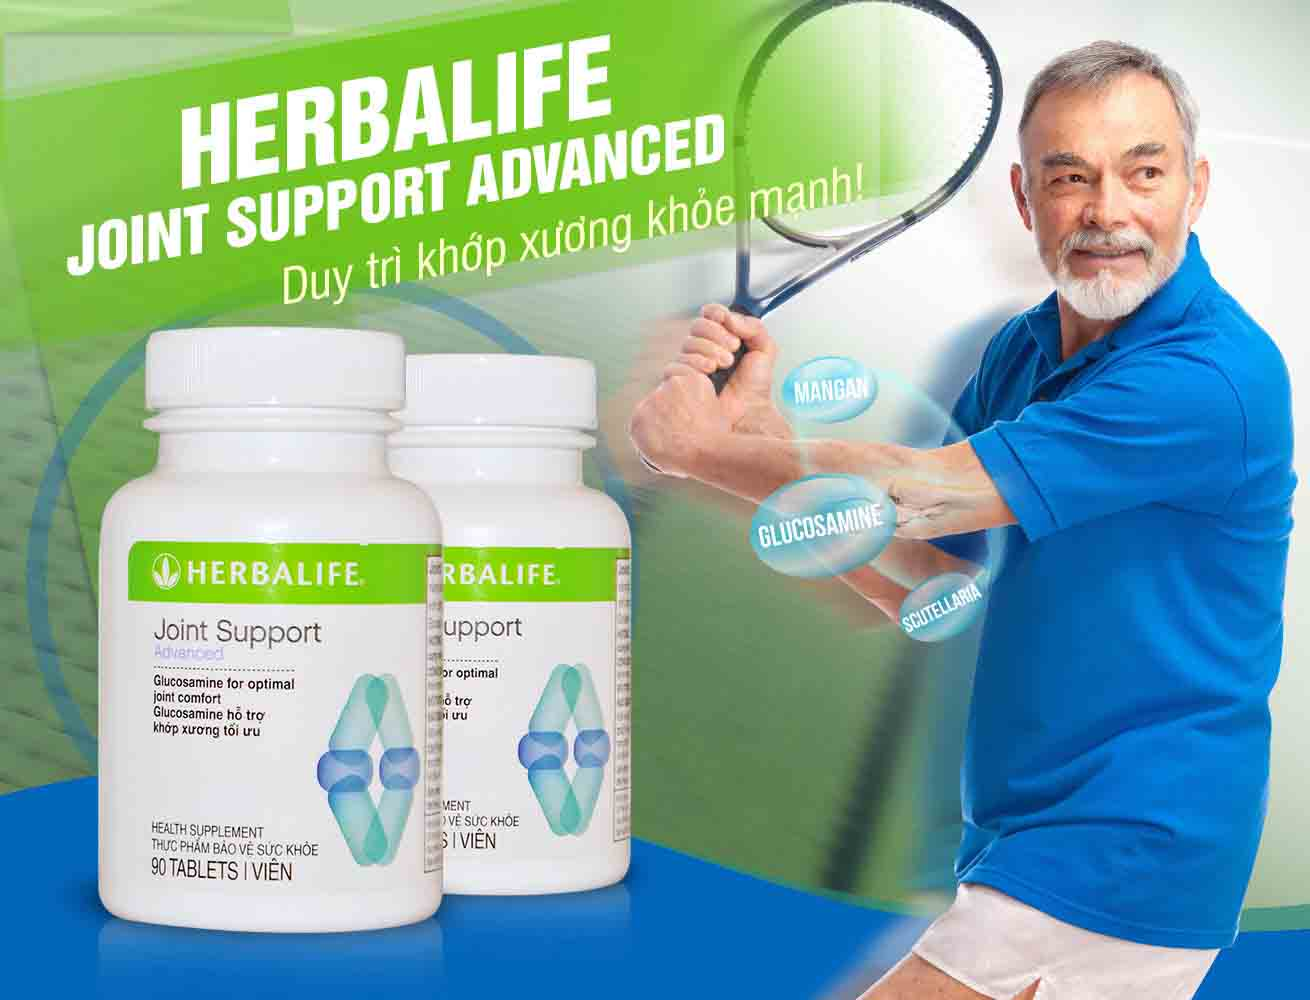 joint-support-advanced-herbalife 1